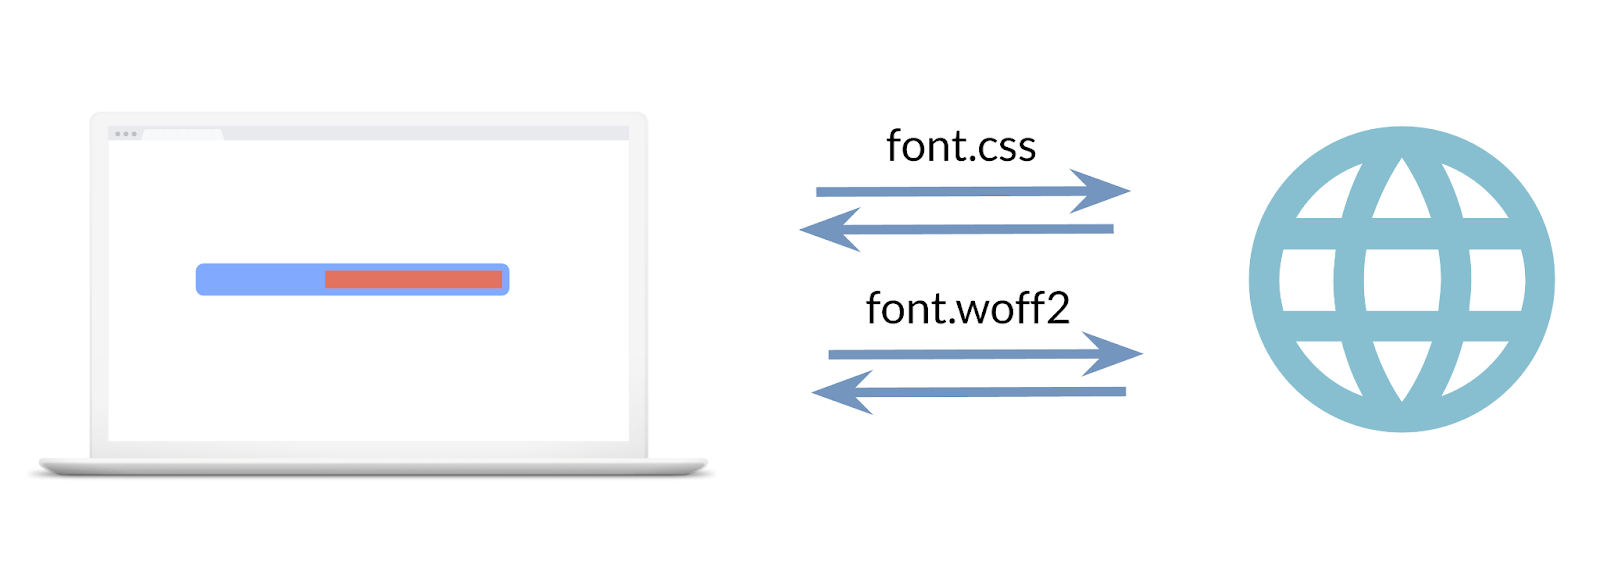 An image showing the two requests made, one for the font stylesheet, the second for the font file.